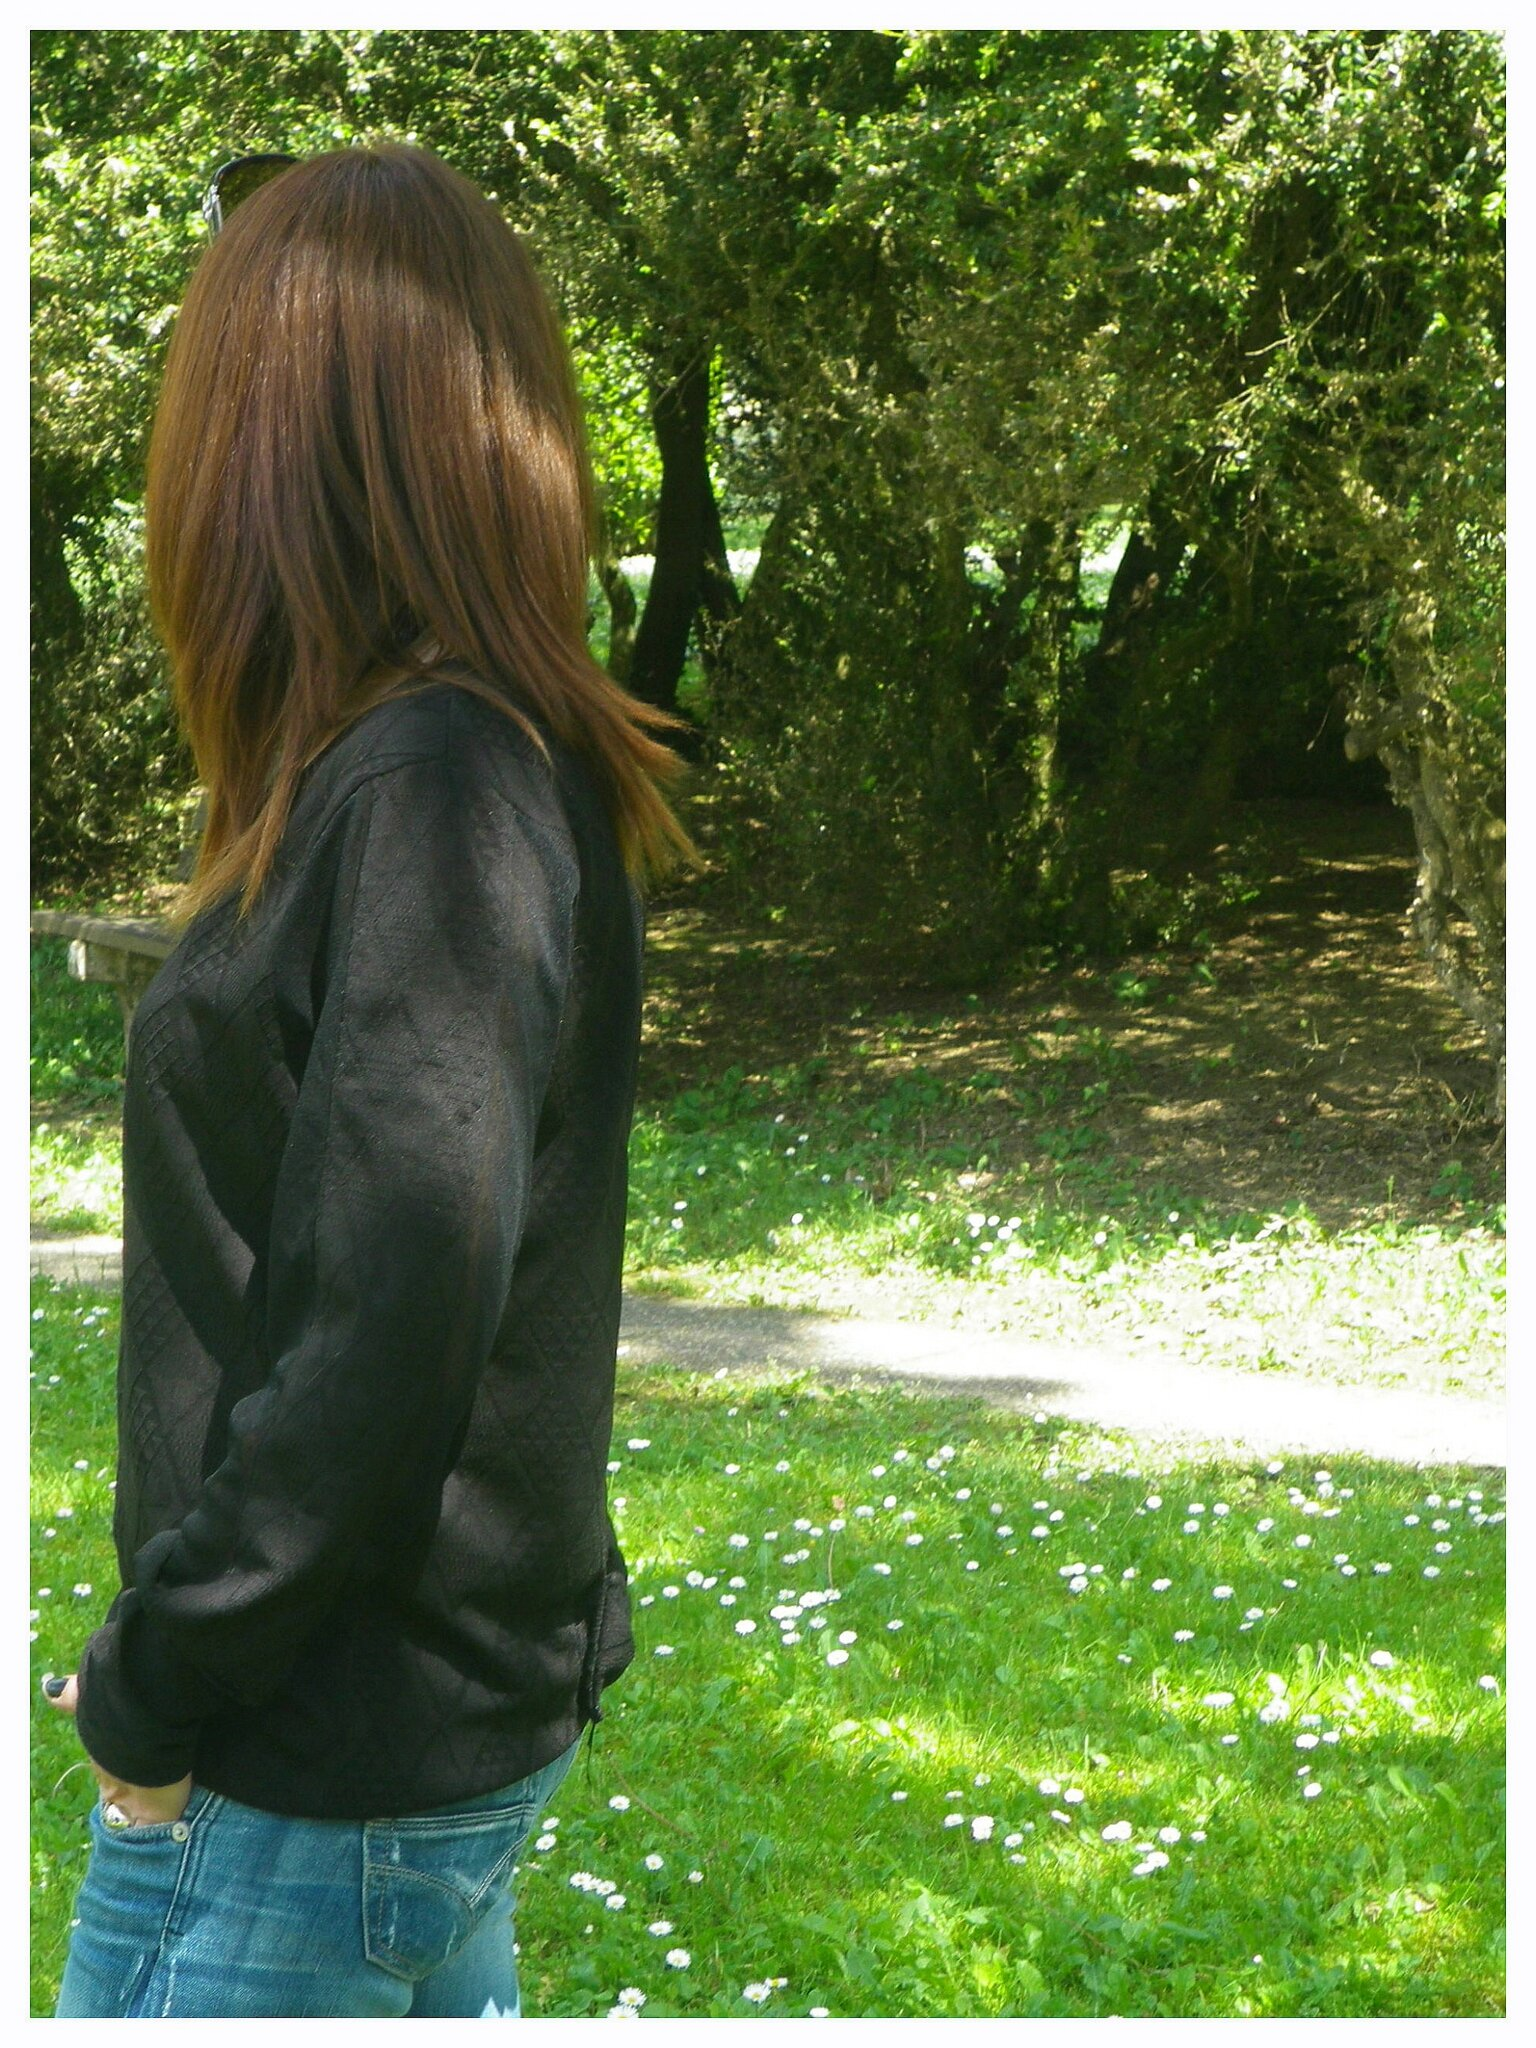 Mon pull loose (26)_1